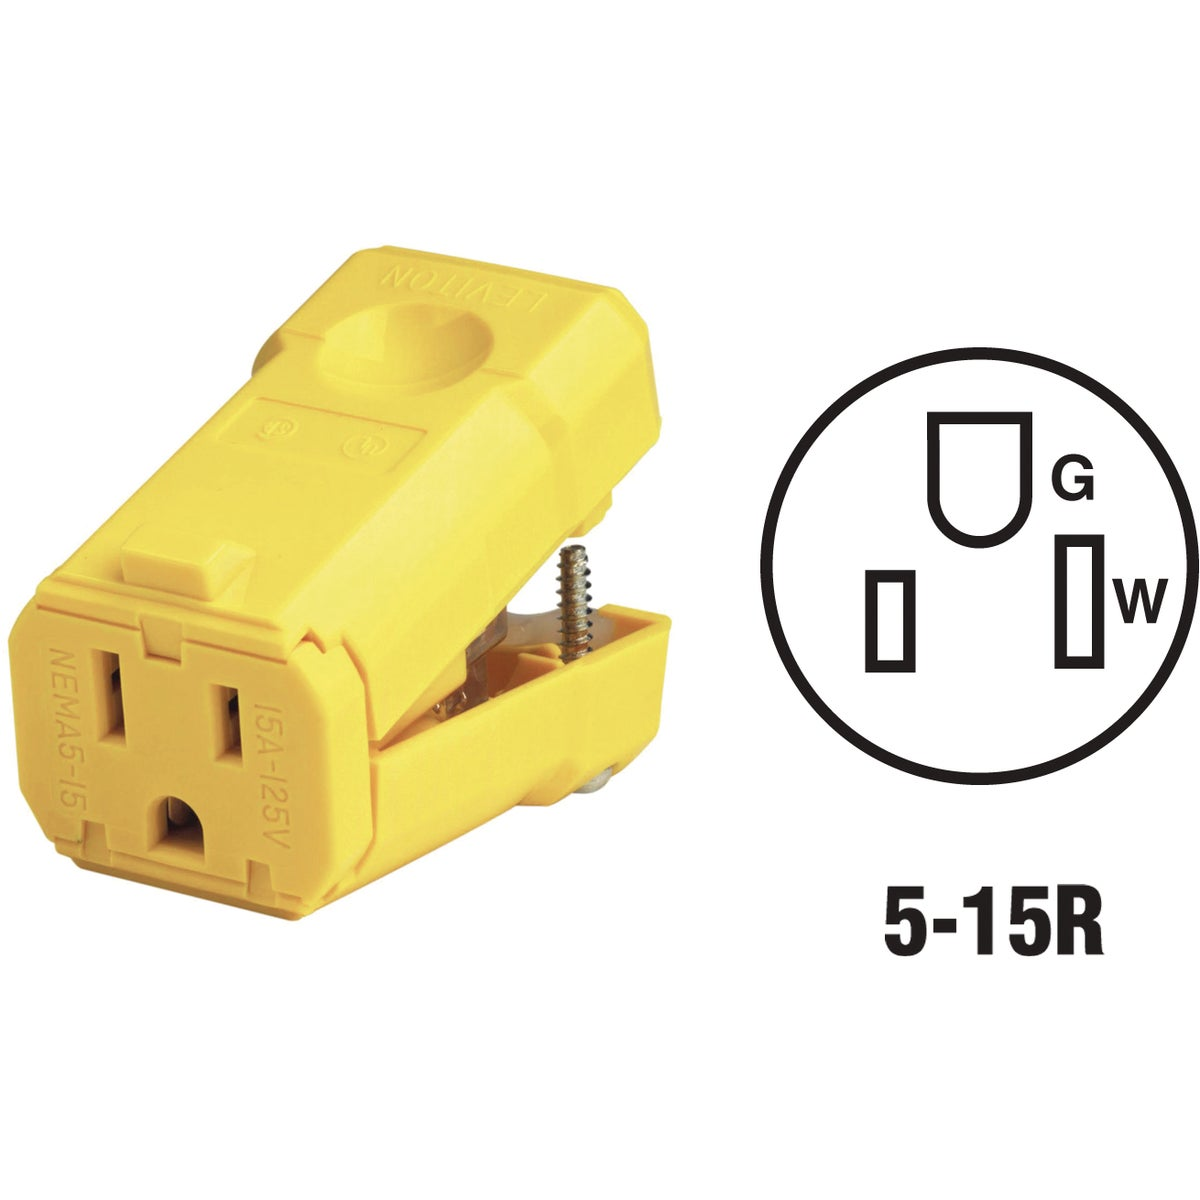 15A GRND CORD CONNECTOR - 5259VY by Leviton Mfg Co